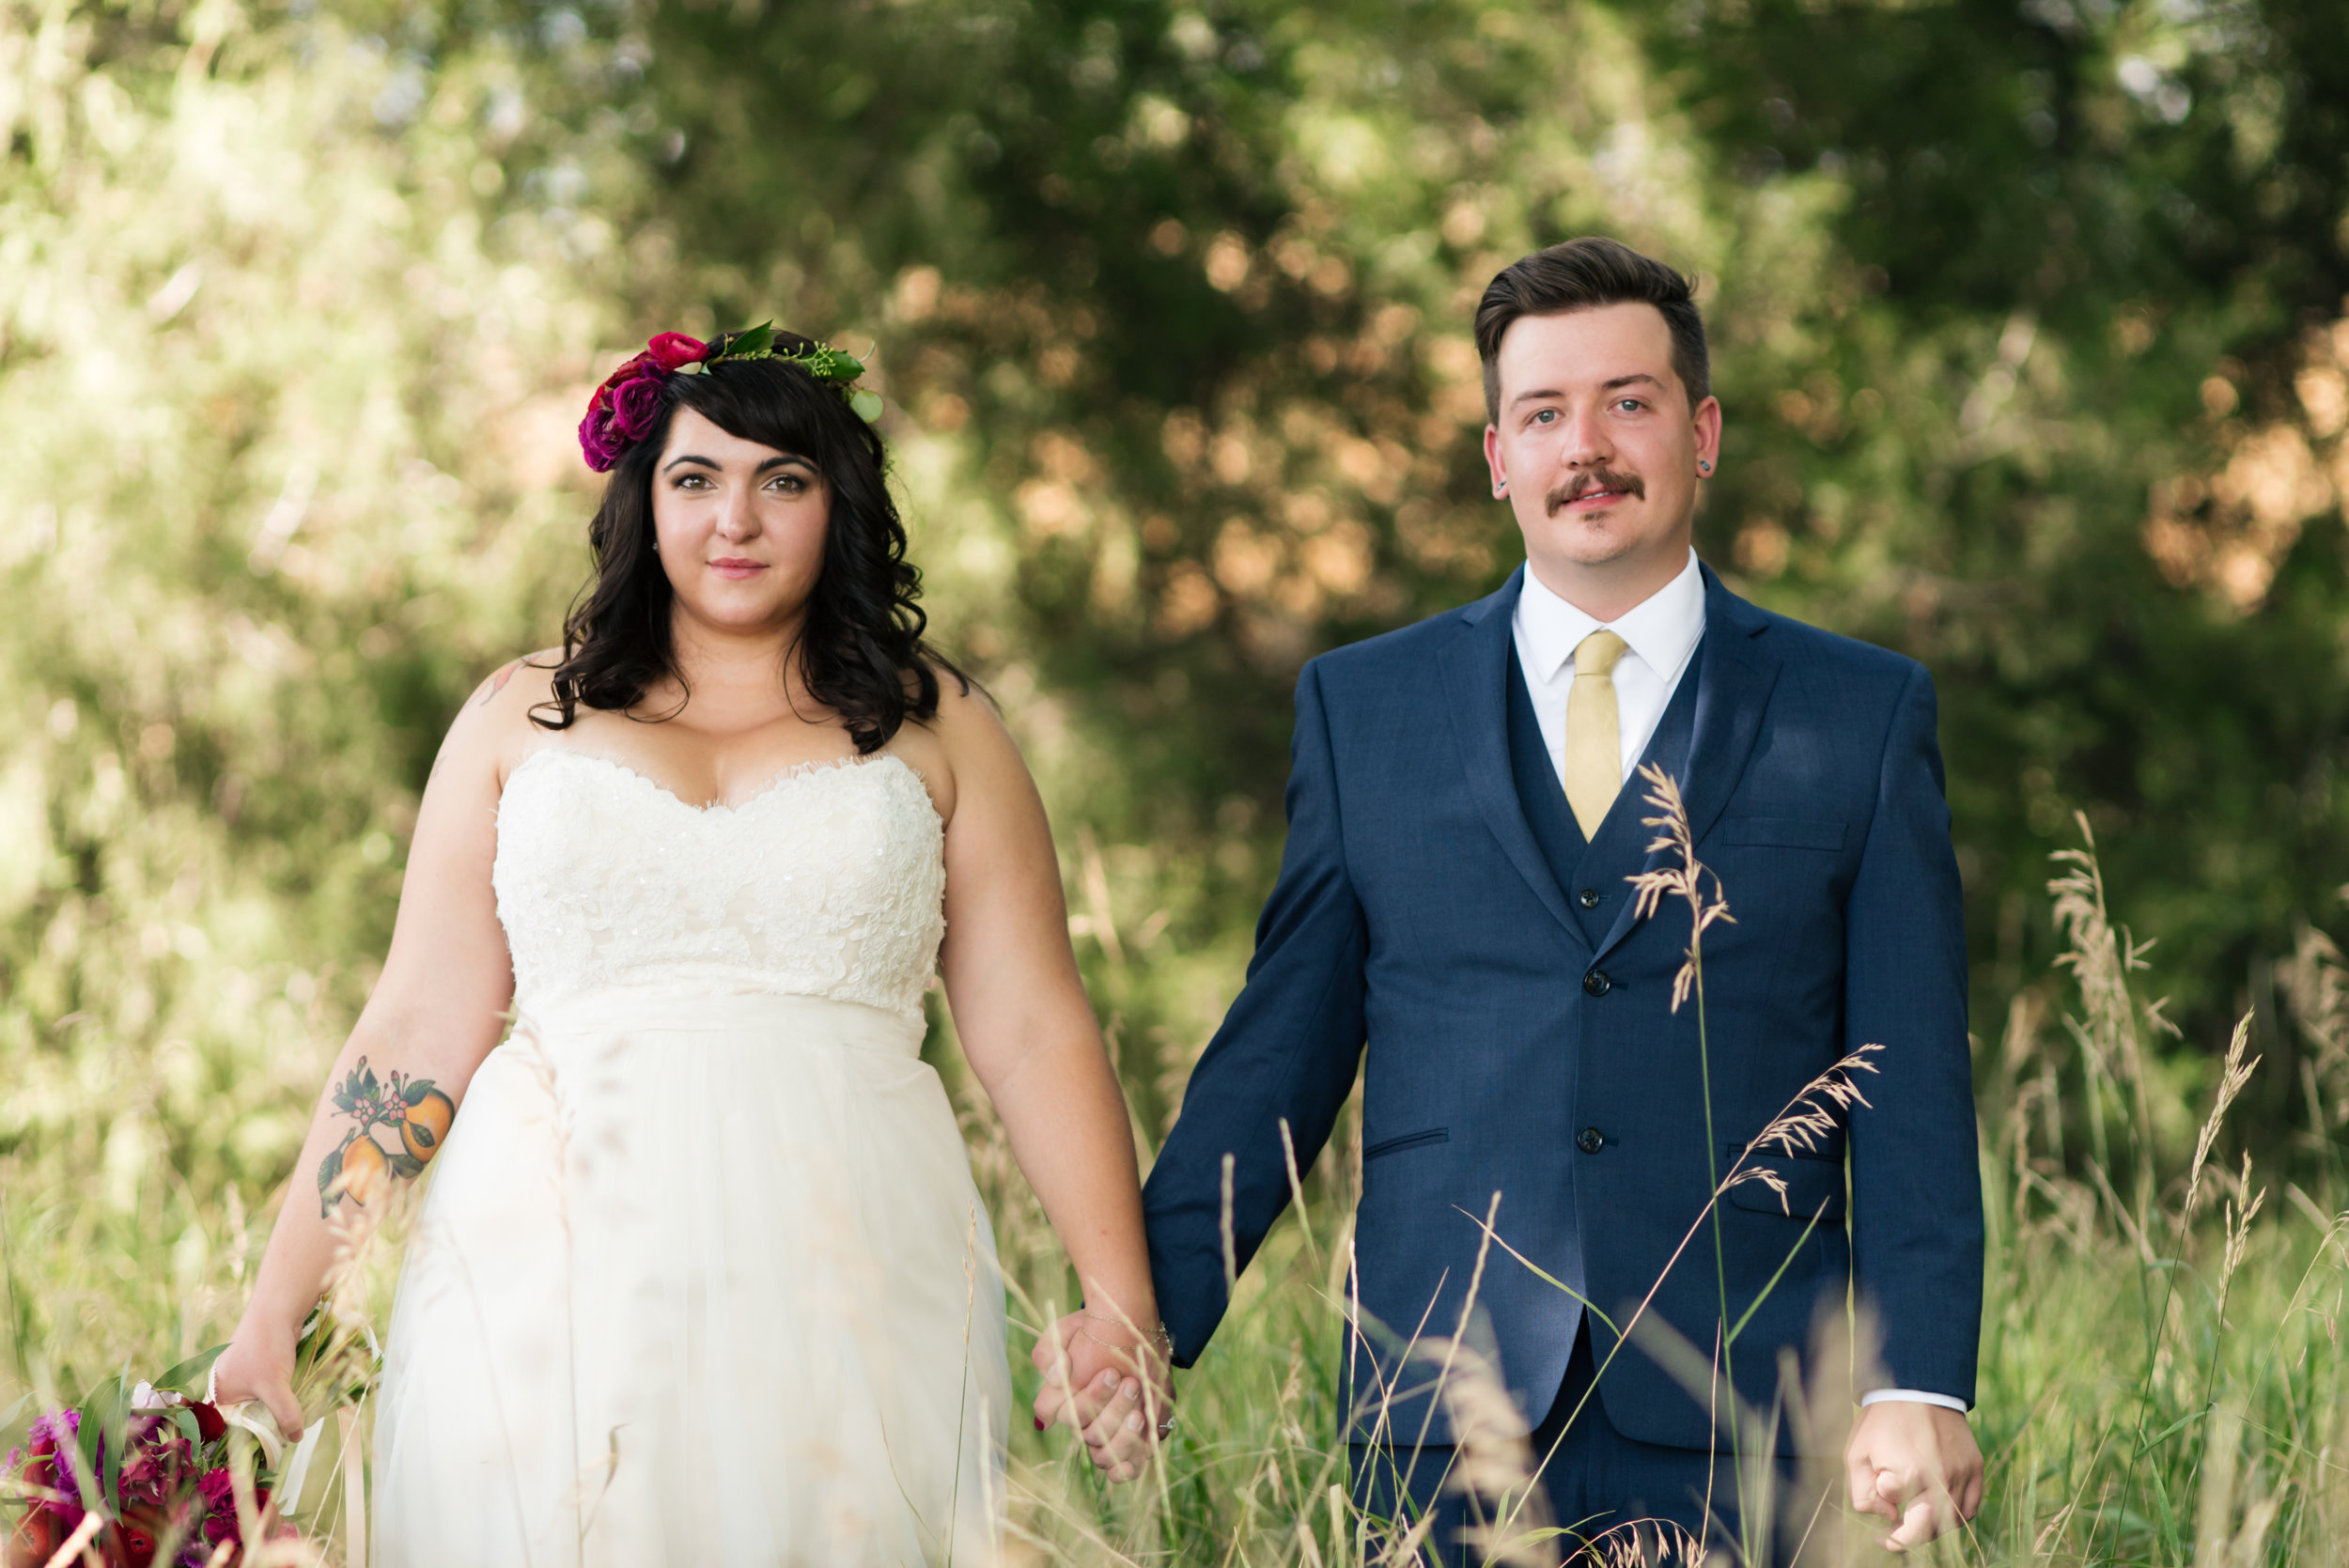 Flowers by Lace and Lilies, Bride and Groom, Flower Crown, Boutonniere, Summer Wedding